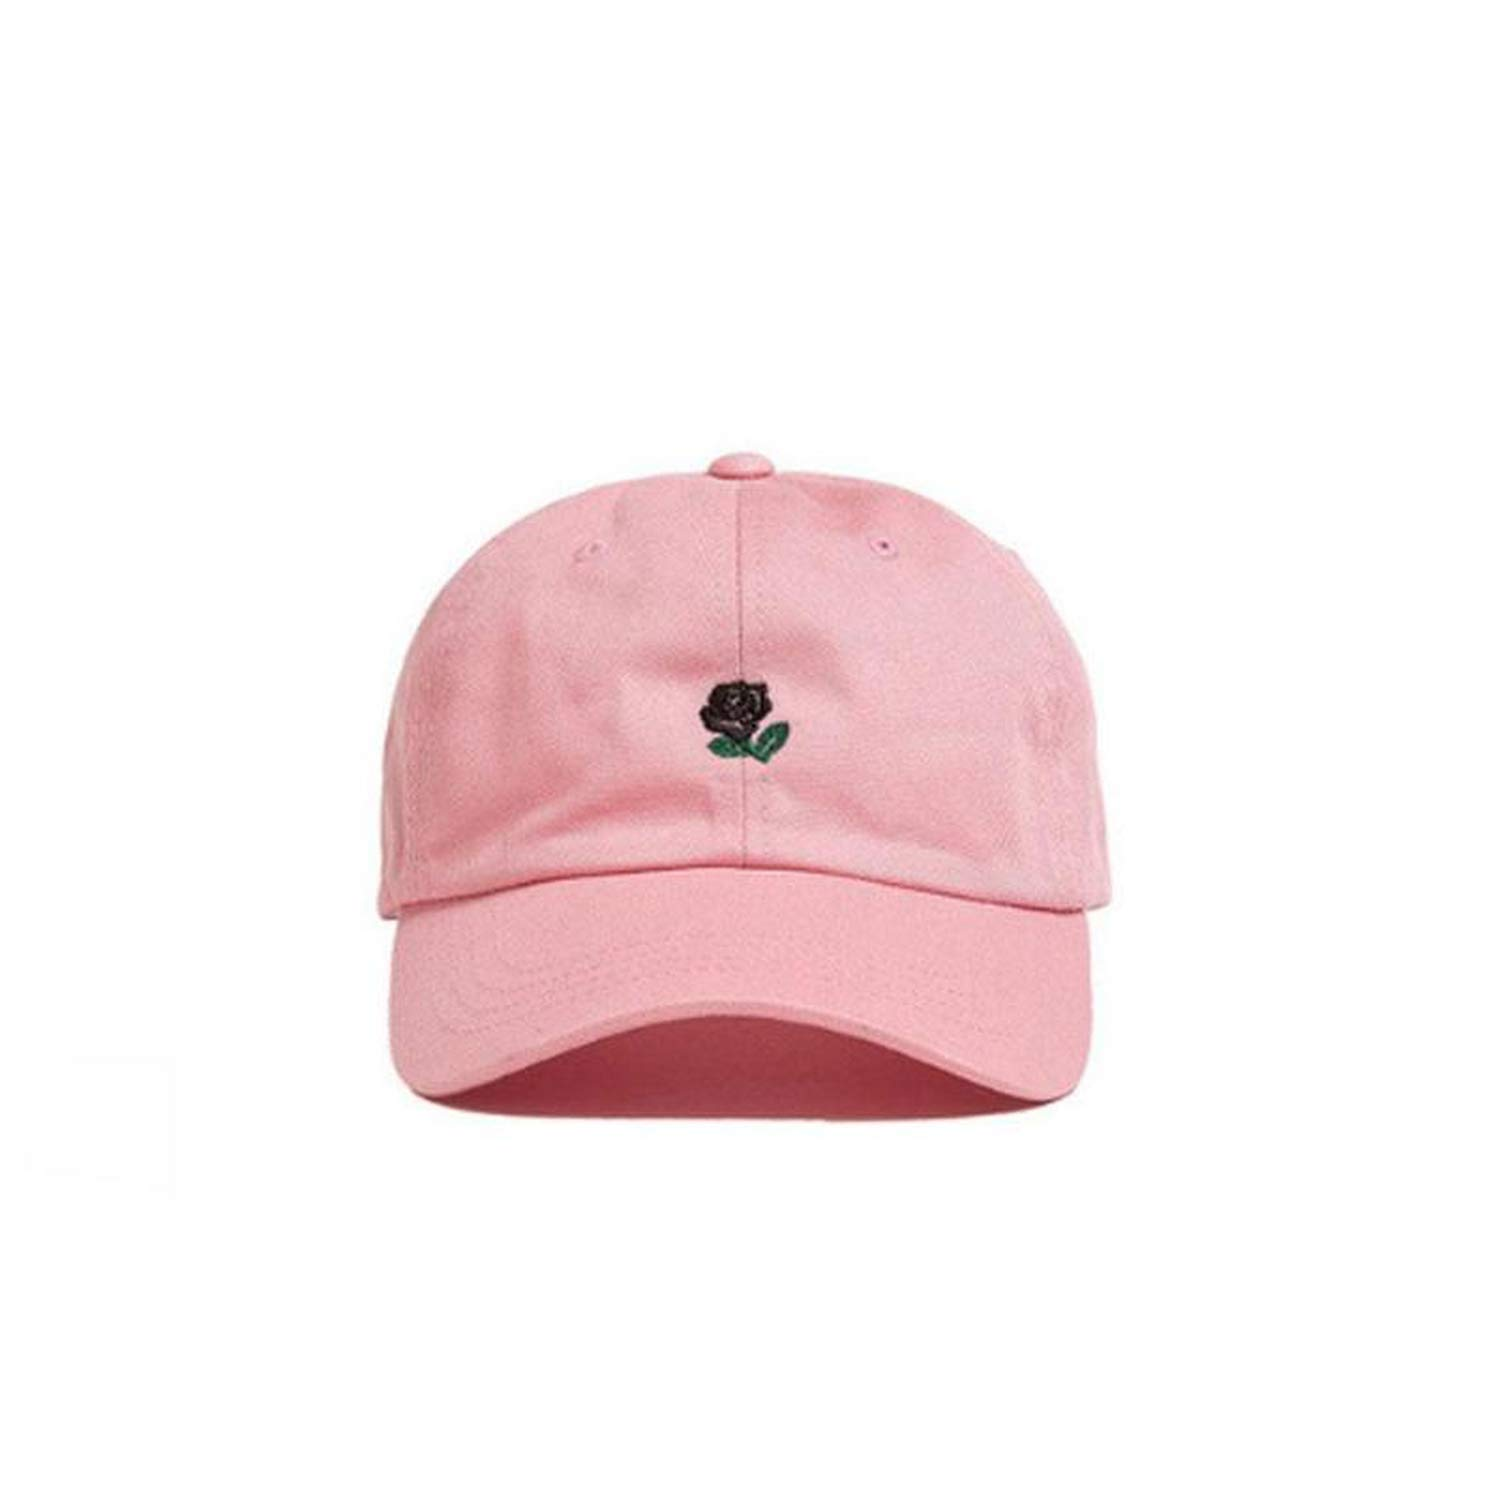 28b74d8a237 NAAO Women Men Hundreds Dad Hat Flower Rose Embroidered Curved Brim  Baseball Cap Visor Hat Clothing Accessories at Amazon Women s Clothing  store